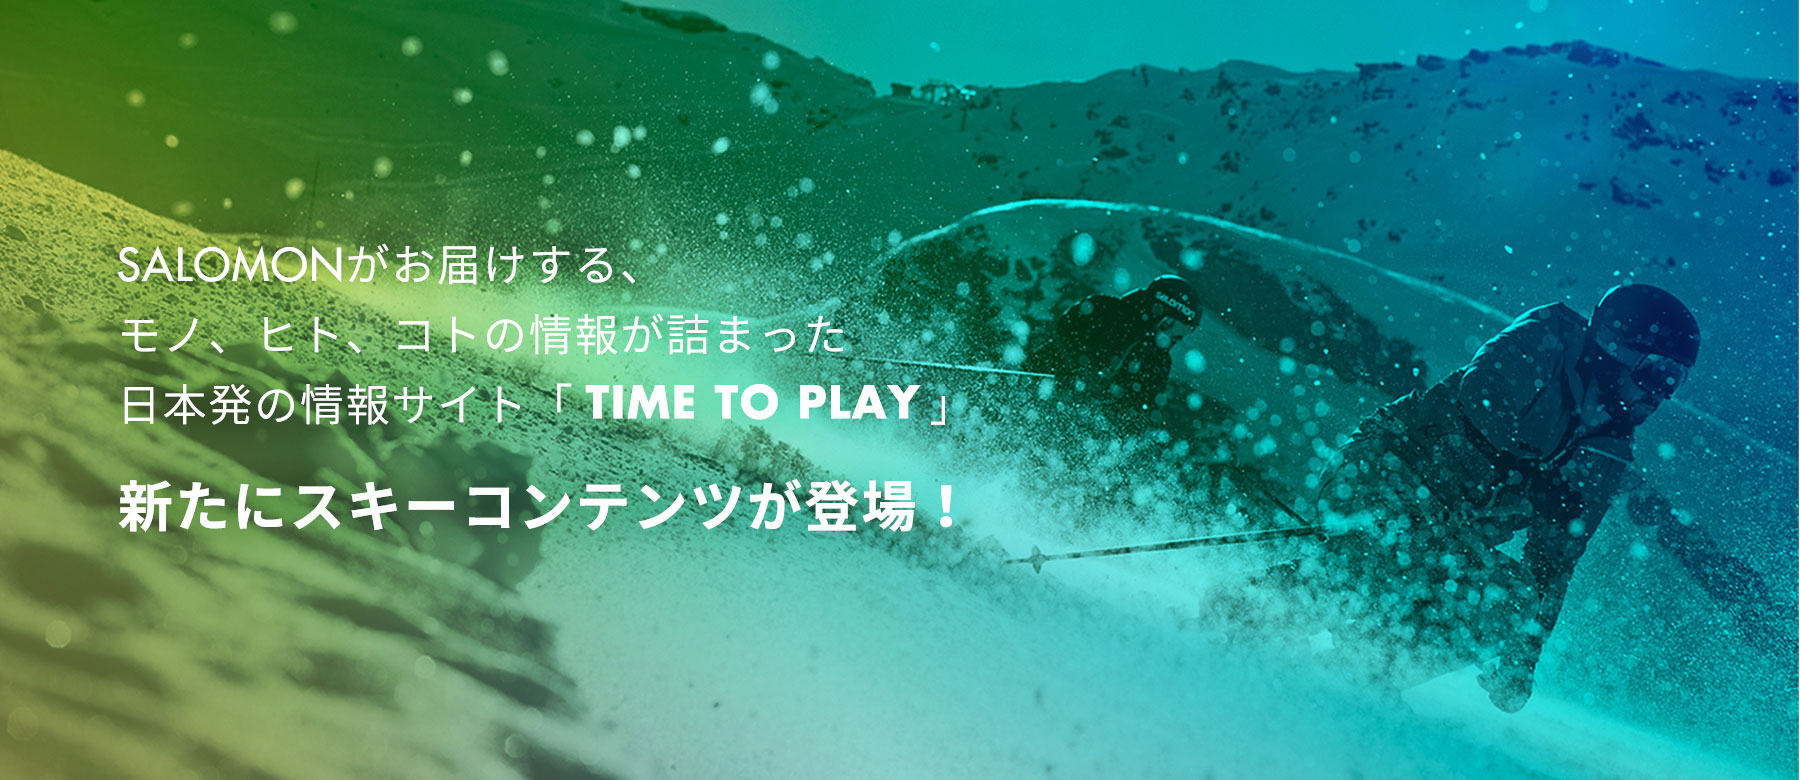 TIME TO PLAY BY SALOMON がお届けする、モノ、ヒト、コトの情報が詰まった日本発の情報サイト。新たにスキーコンテンツが登場!